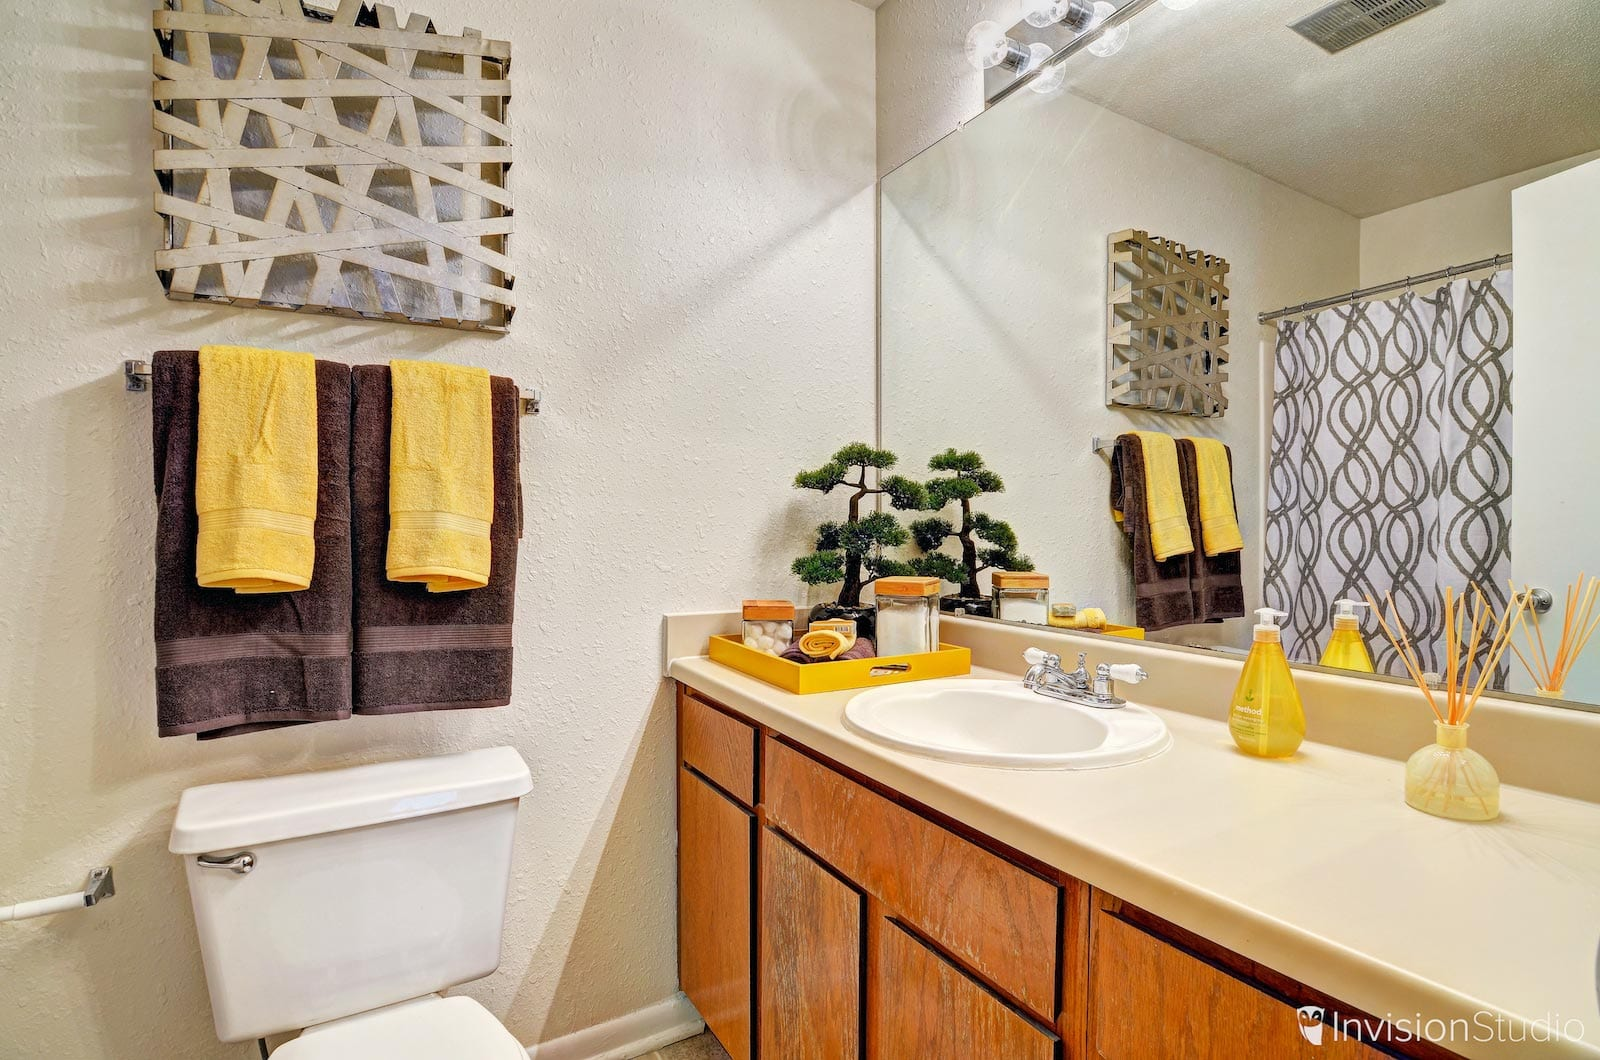 Bathroom Shot | 360 Virtual Tour Photographer San Diego | 360 Photography Services San Diego | 360 Panoramic Photography San Diego